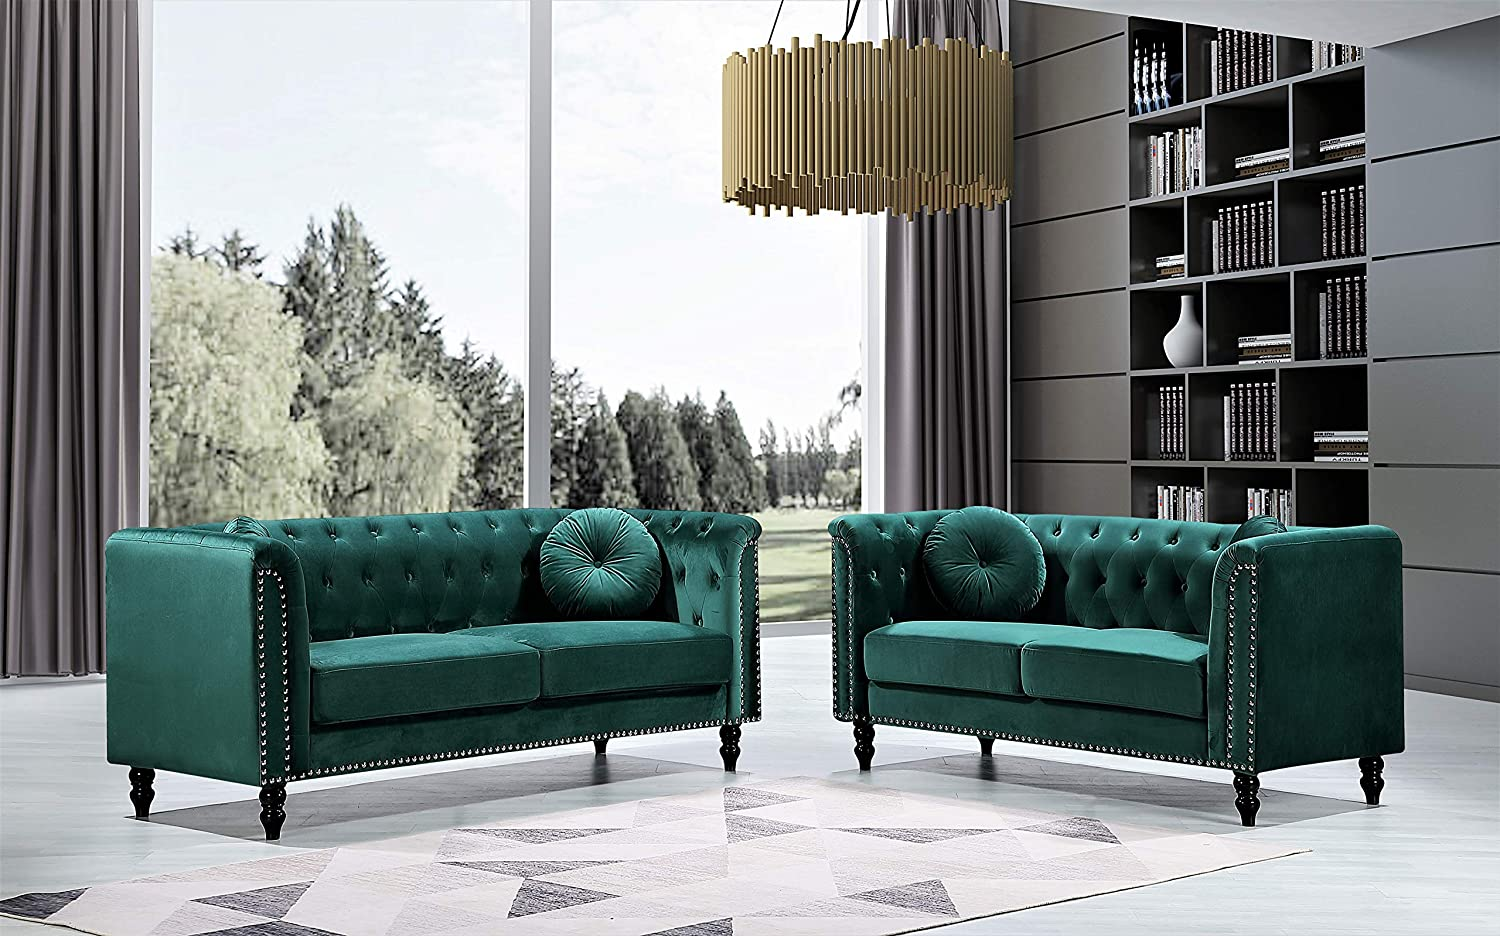 Container Furniture Direct Kittleson Mid Century Velvet Upholstered Nailhead Chesterfield Sofa Set, 2 Piece, Green